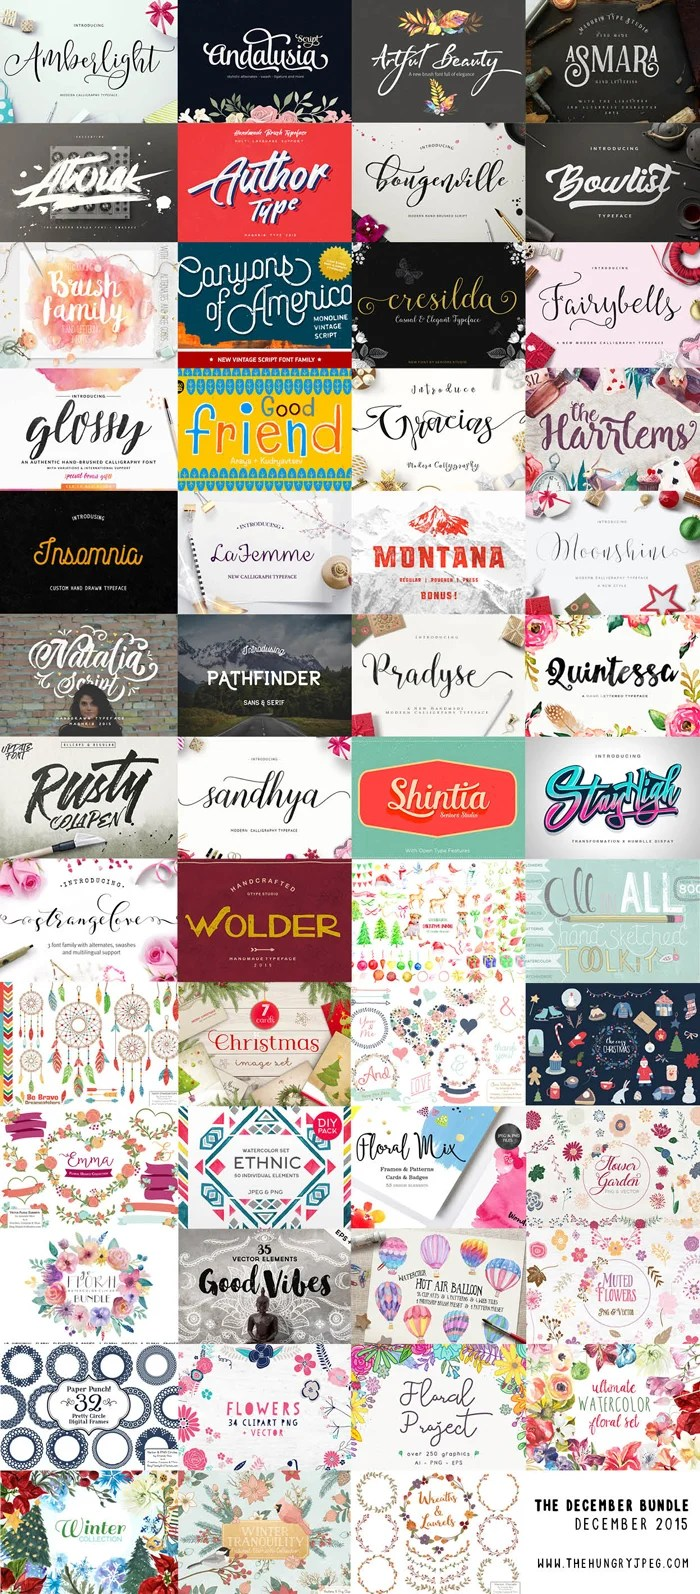 The Hungry JPEG's December Font Bundle: 30 Fonts & 1500 Graphics! Save 20% with code Smiles20!